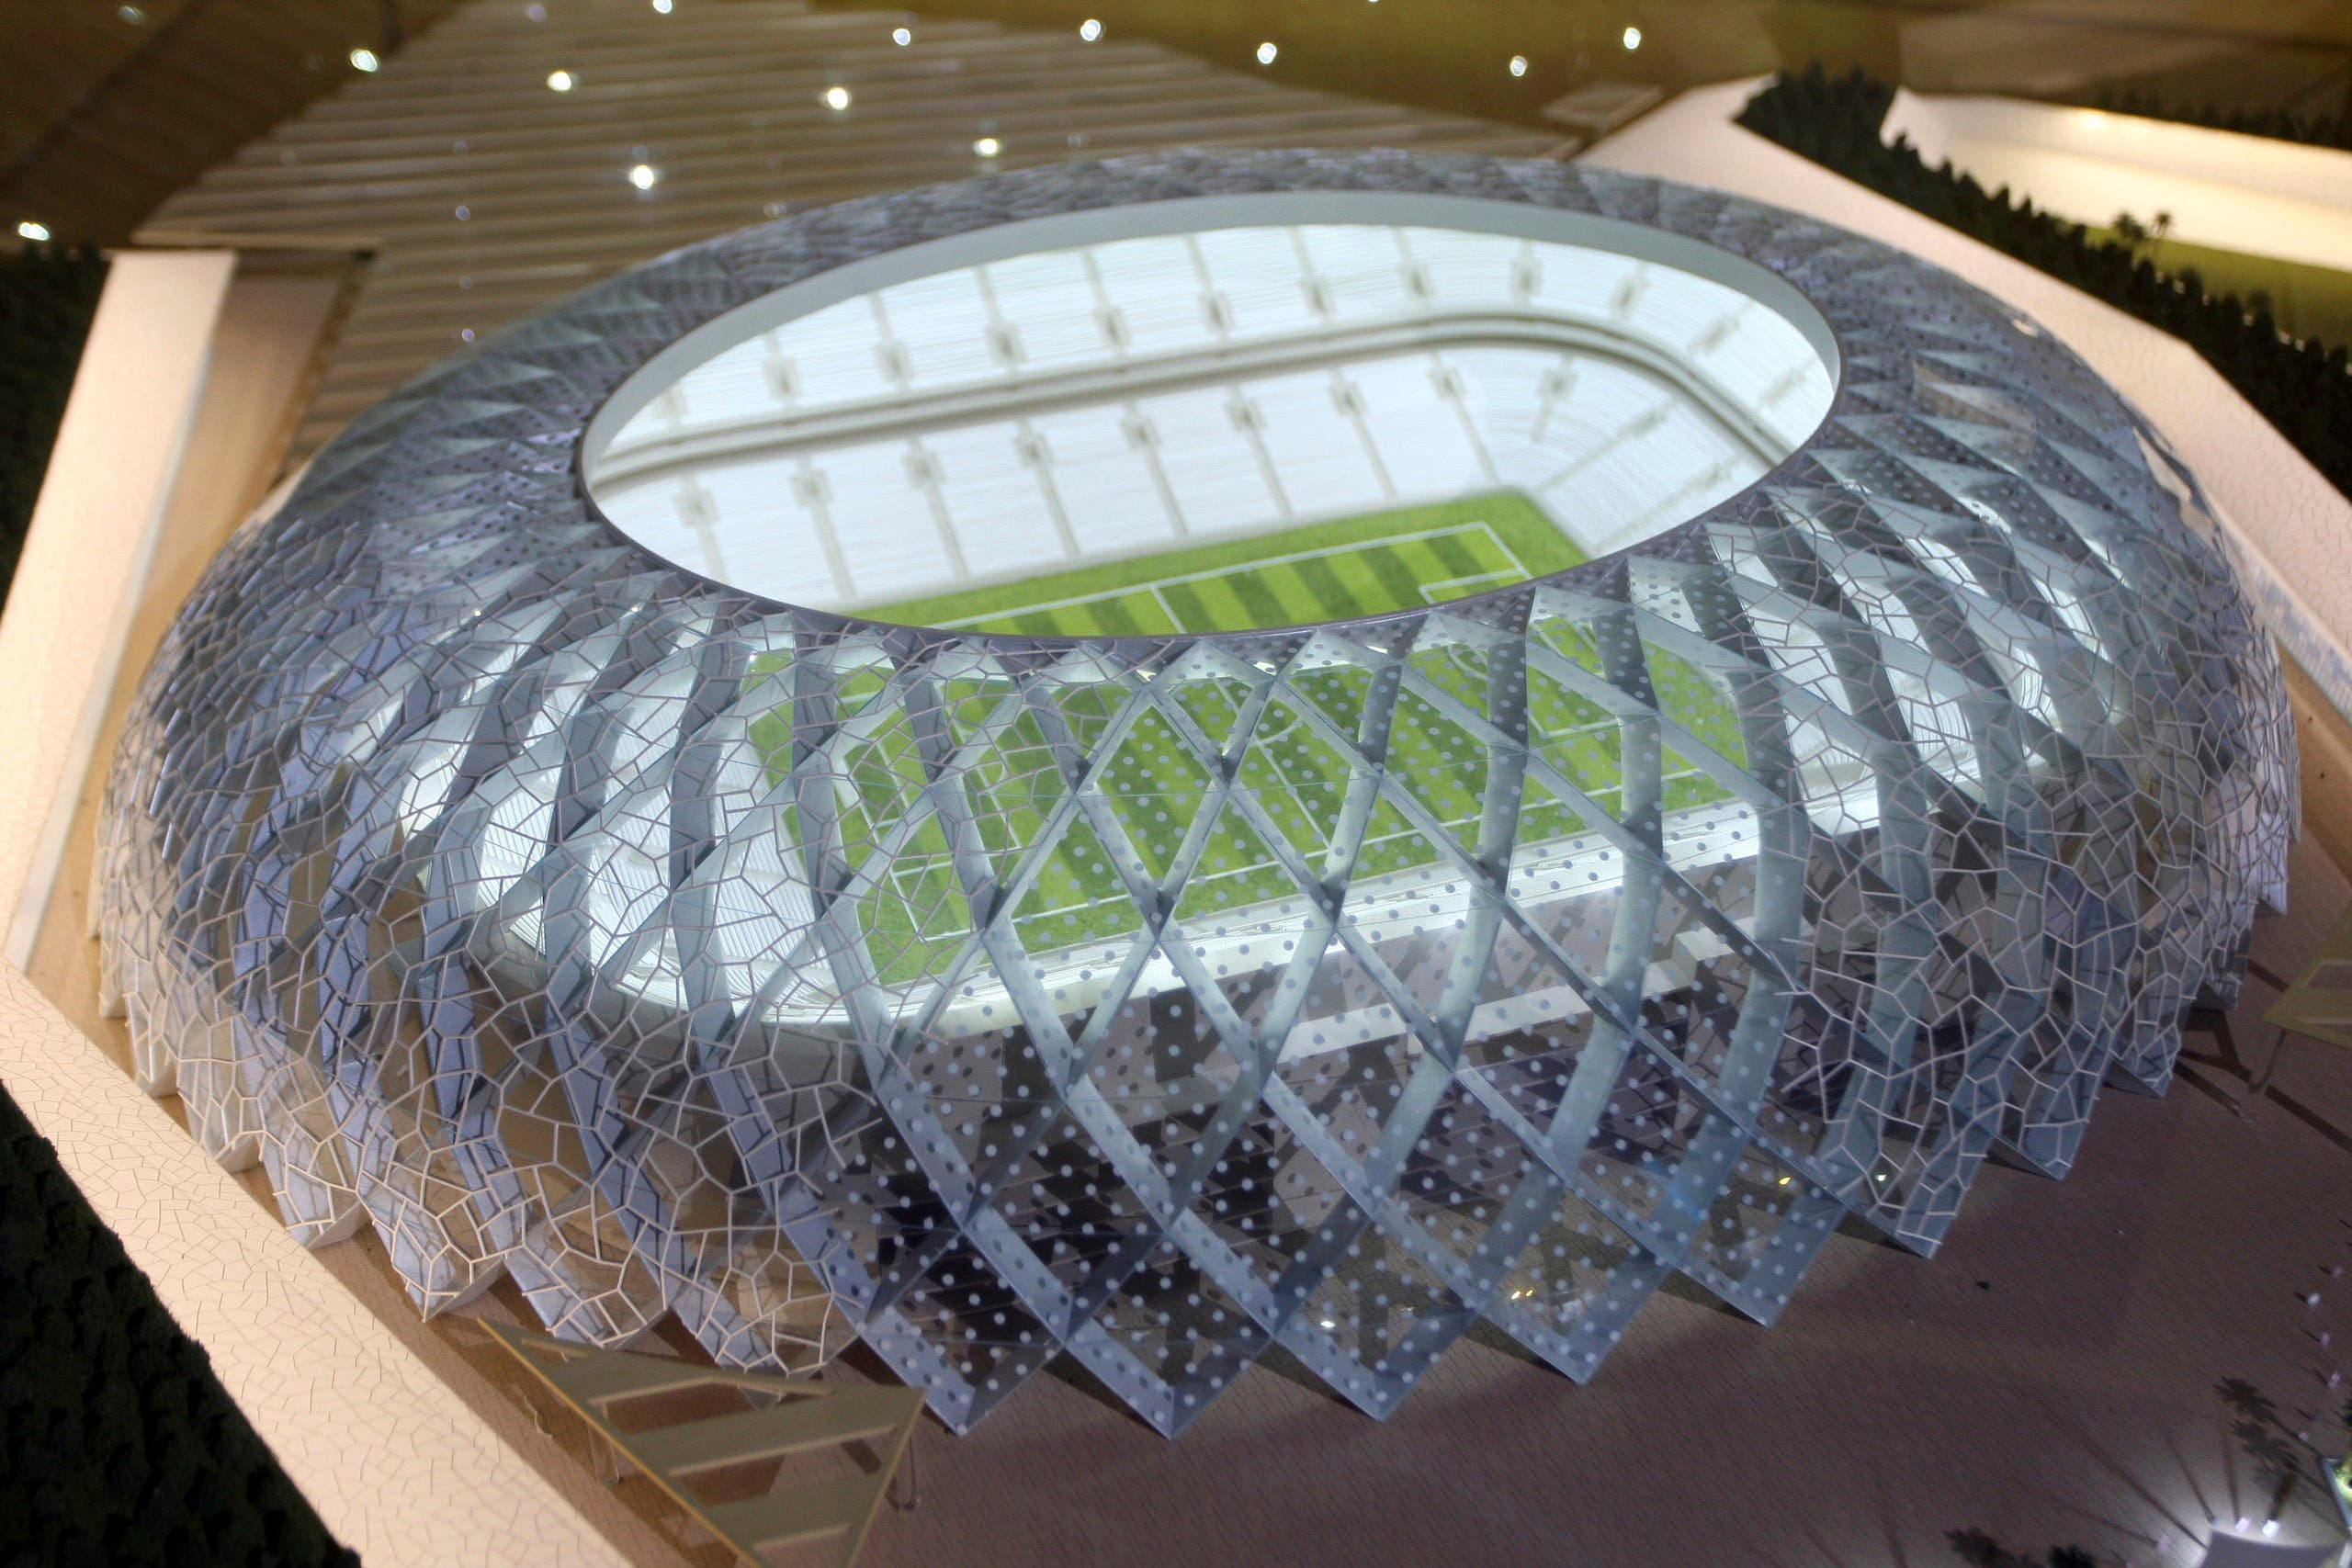 Qatar presents a model of its Al-Wakrah stadium, as the host of the 2022 World Cup, in Doha, Qatar. (AP)